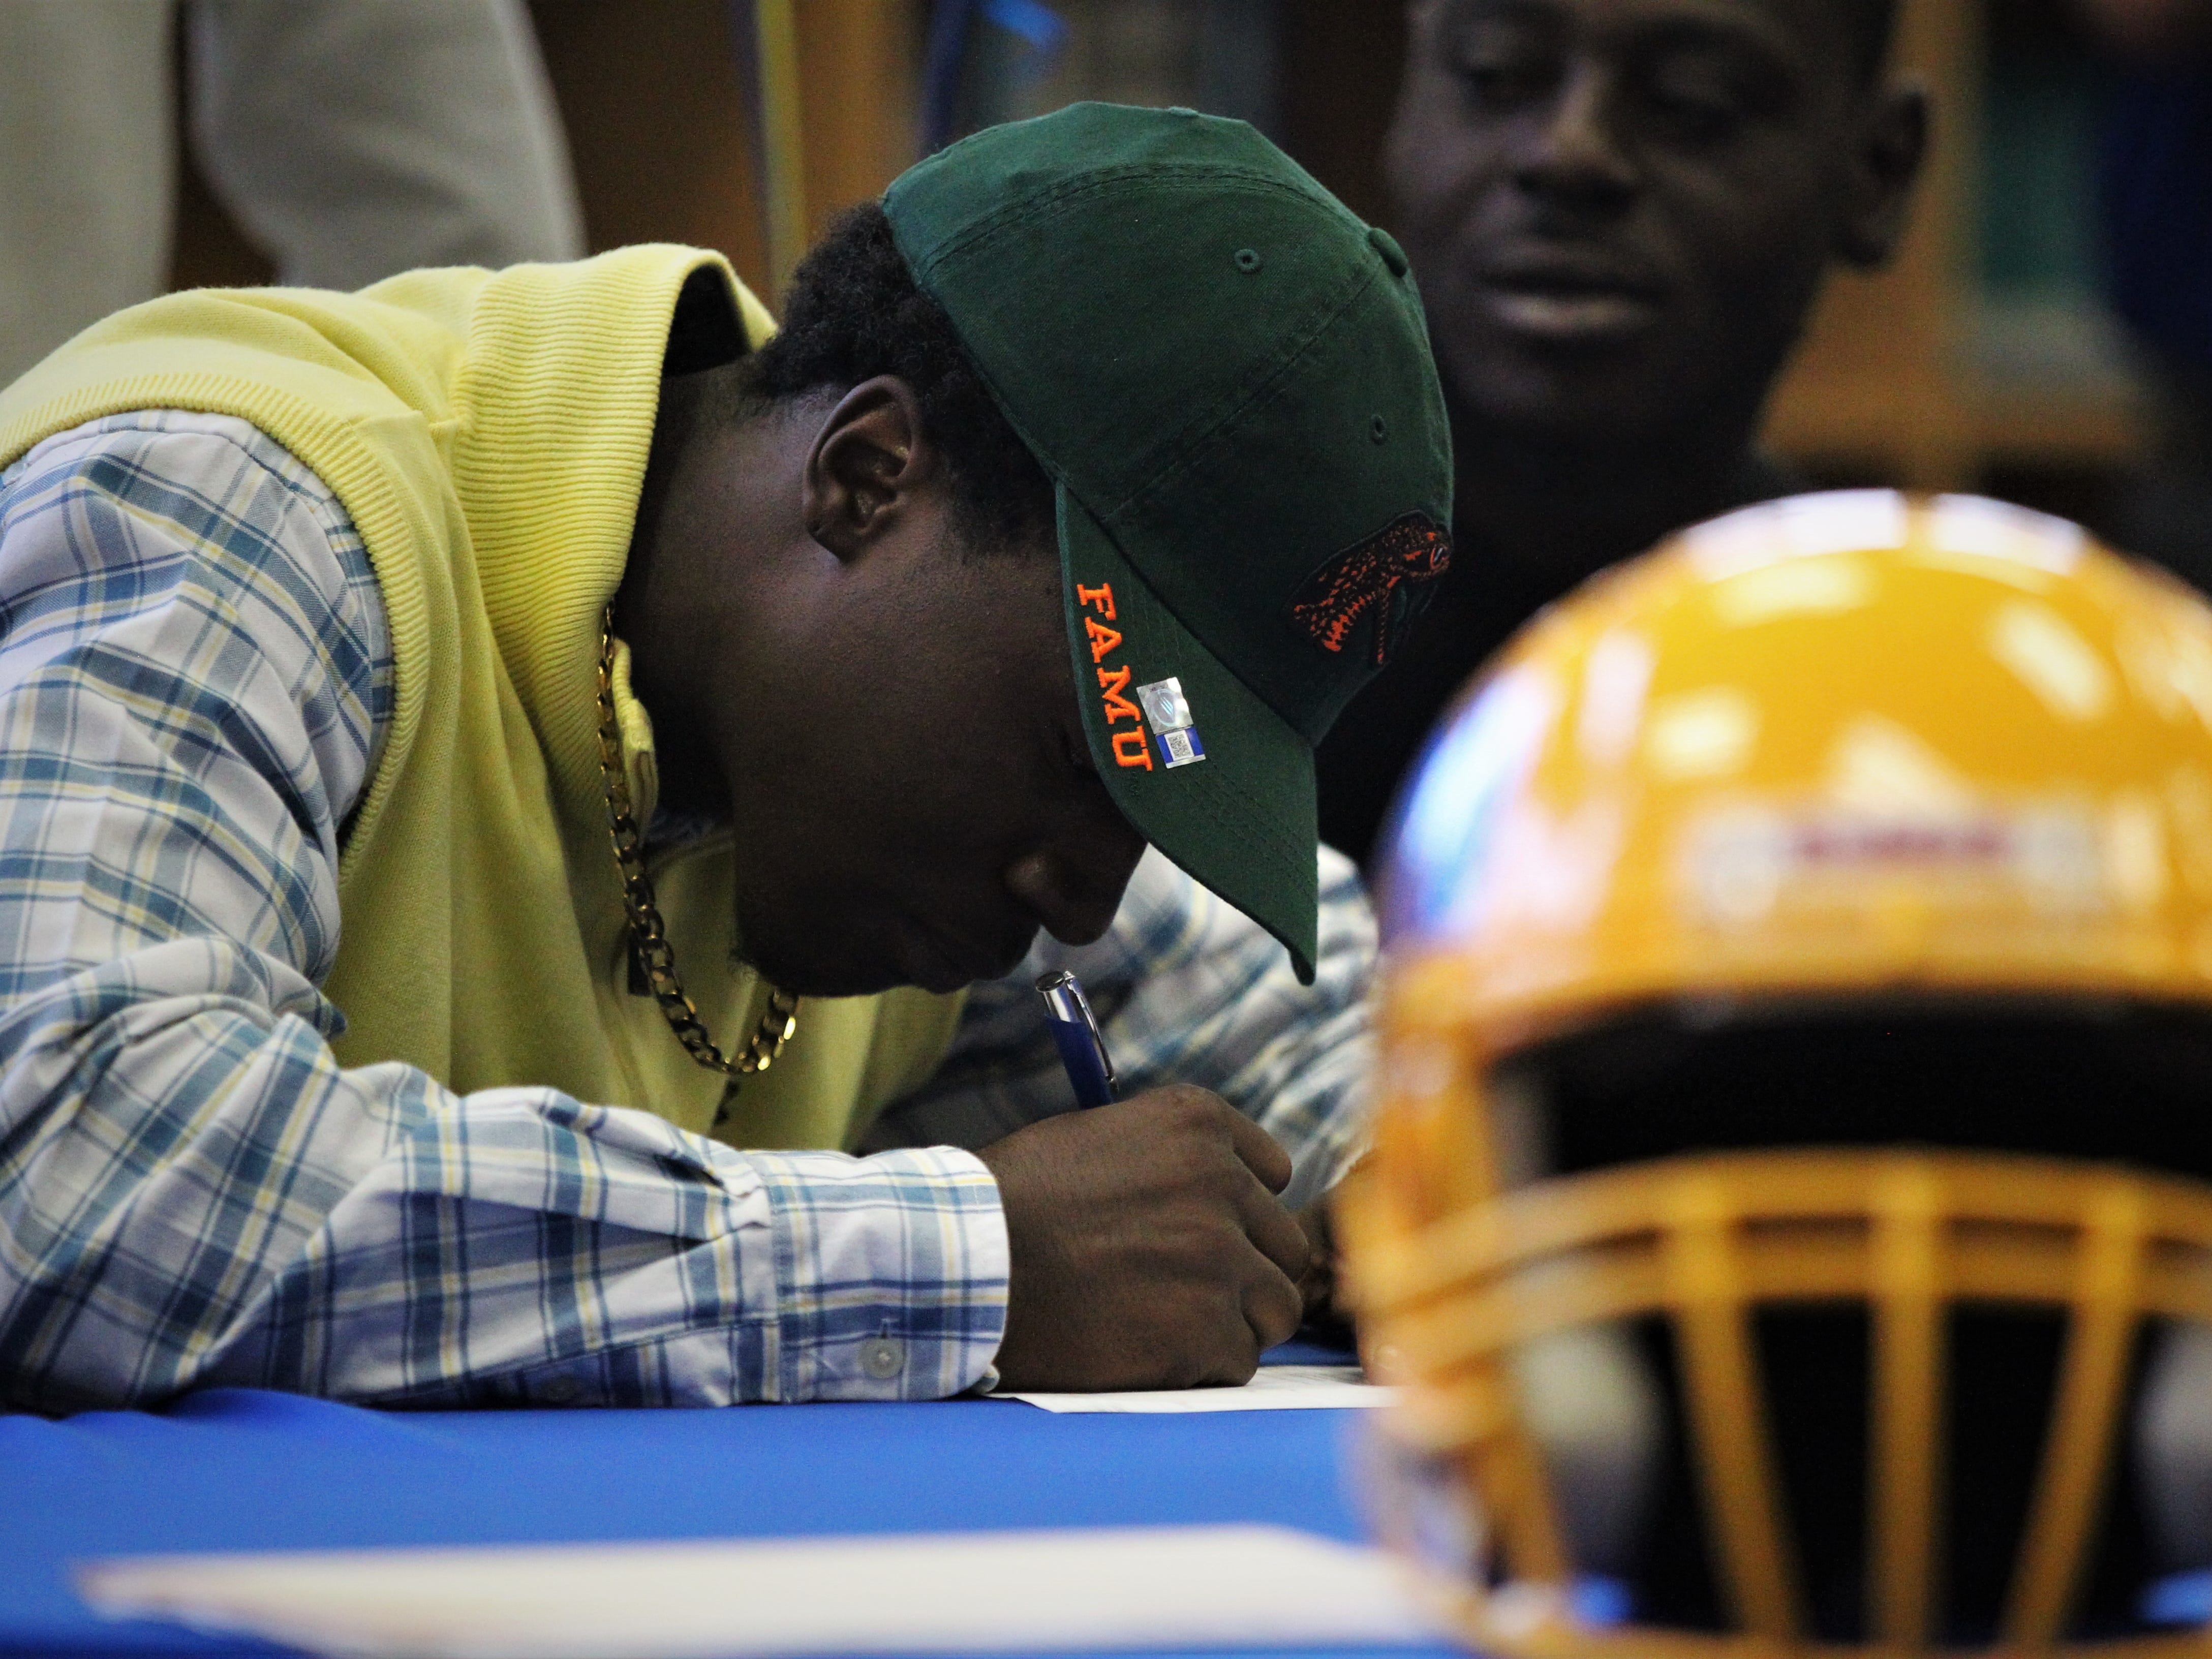 Rickards wide receiver Sammy Carter signed with Florida A&M during signing ceremonies on National Signing Day, Feb. 6, 2019.